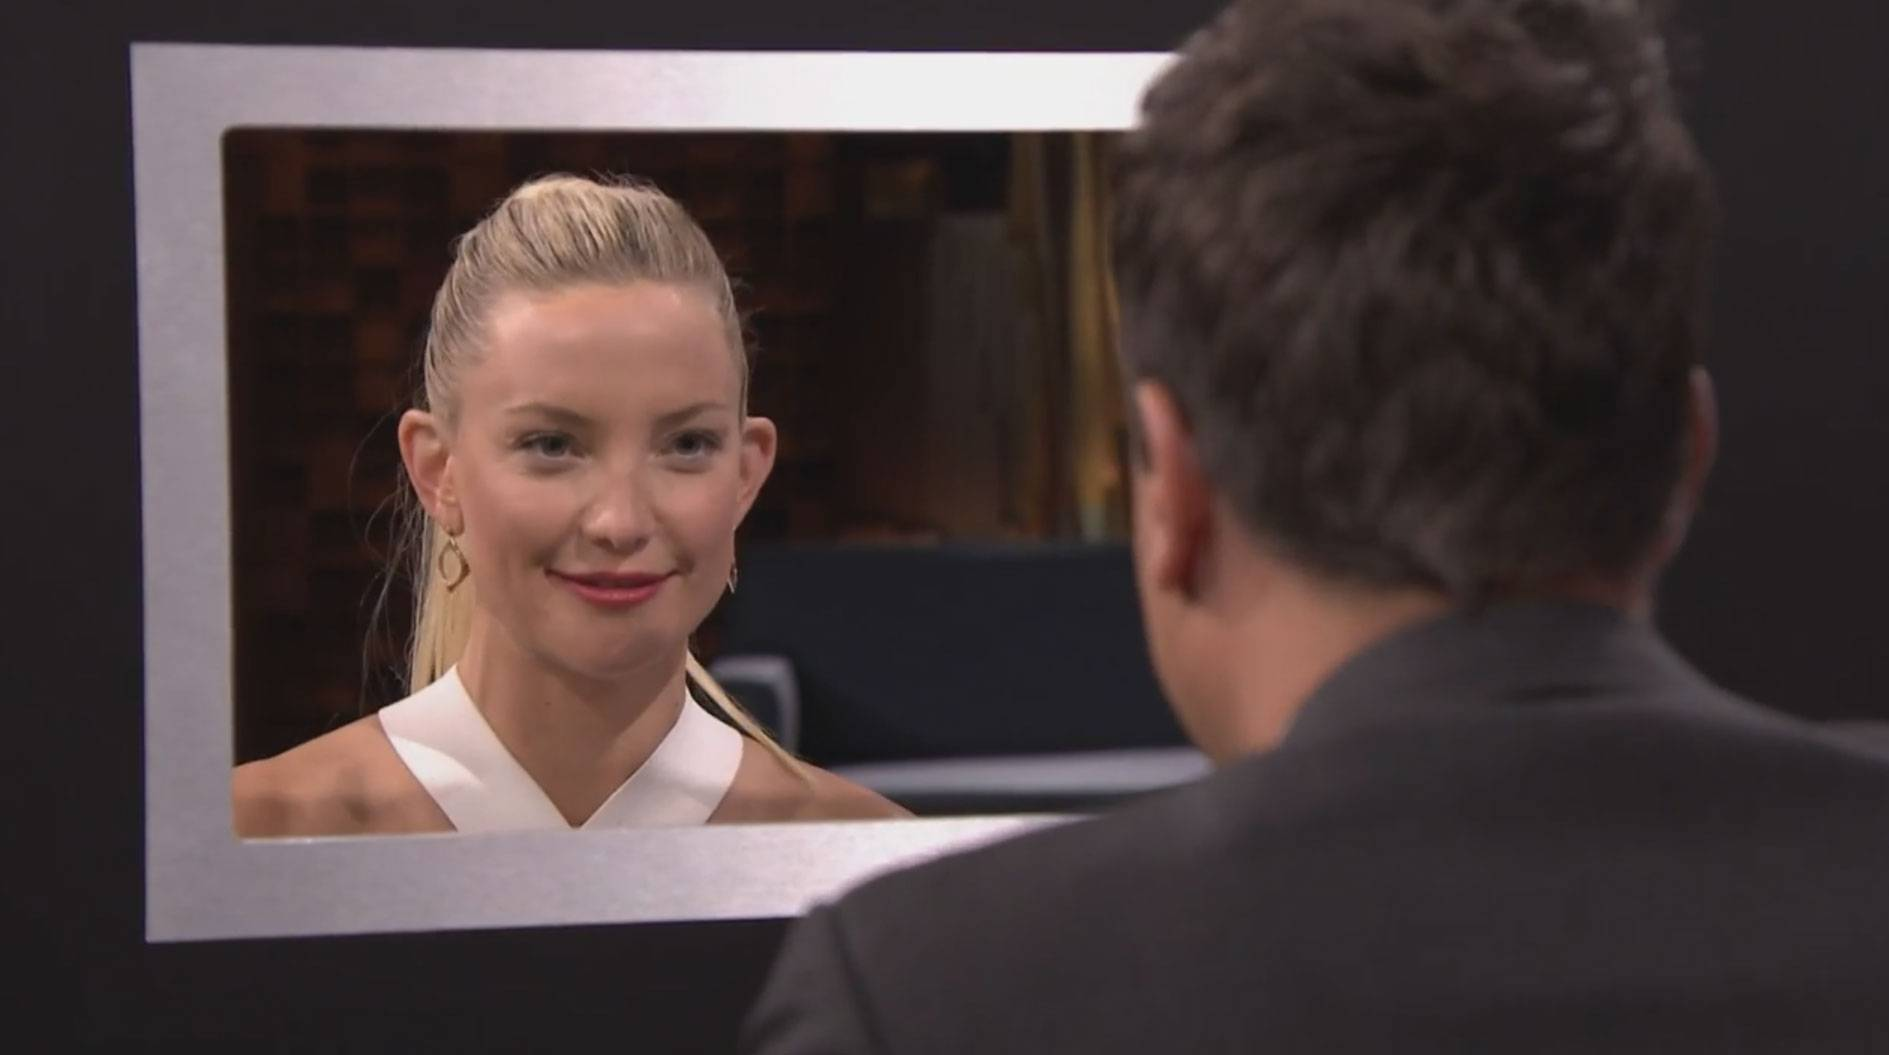 Kate Hudson Nails the Box of Lies | The Blemish